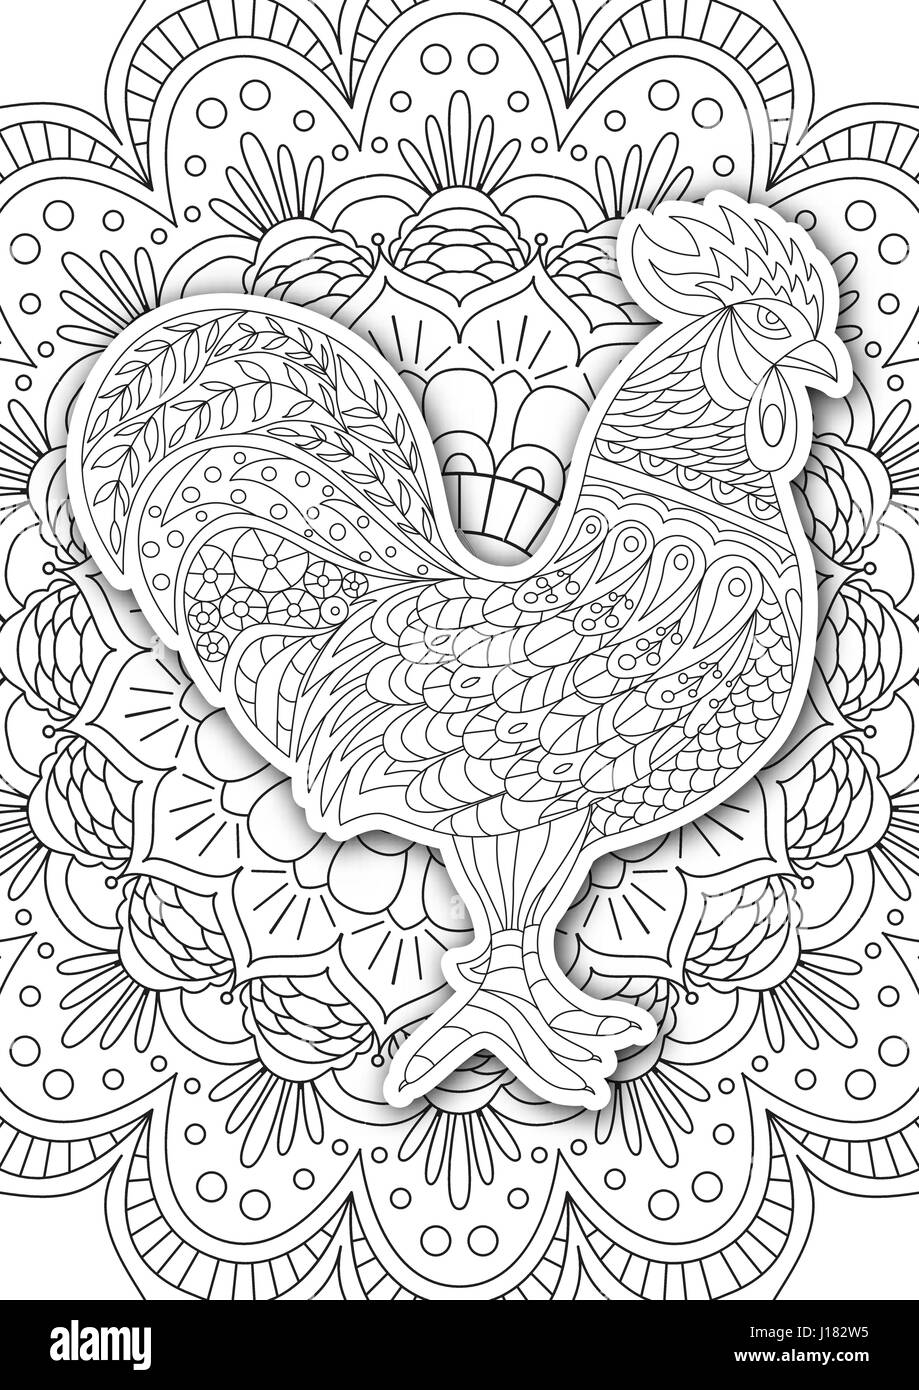 Printable coloring book page for adults rooster design activity printable coloring book page for adults rooster design activity to older children and relax adult vector with the symbol of the new year 2017 outline biocorpaavc Gallery